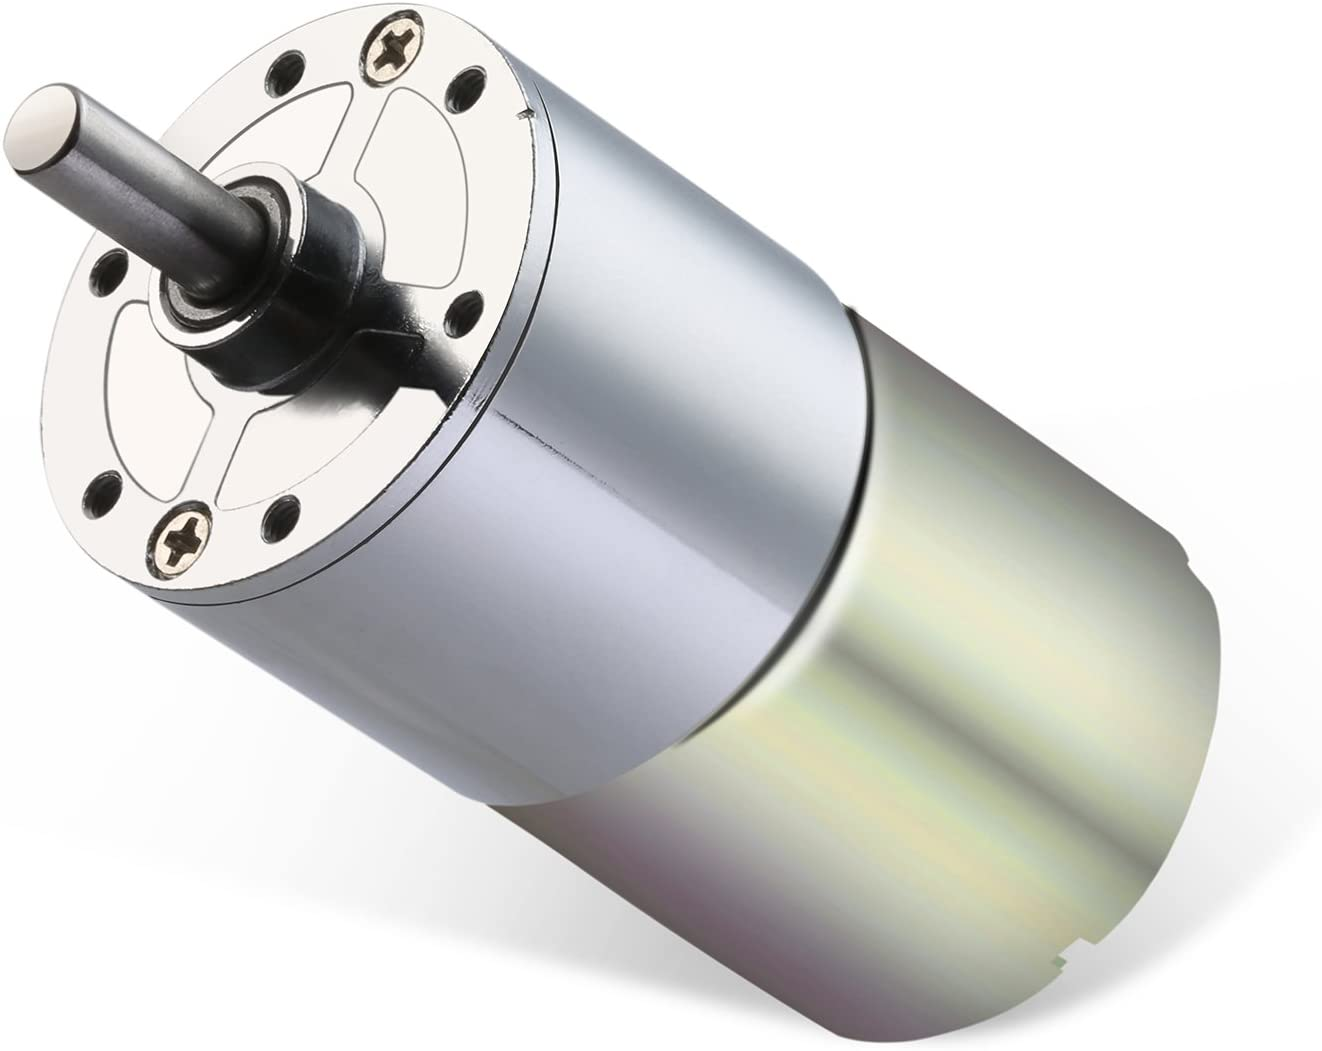 147 mNm DC Geared Motor Canon 24 V dc Output Speed 40 rpm